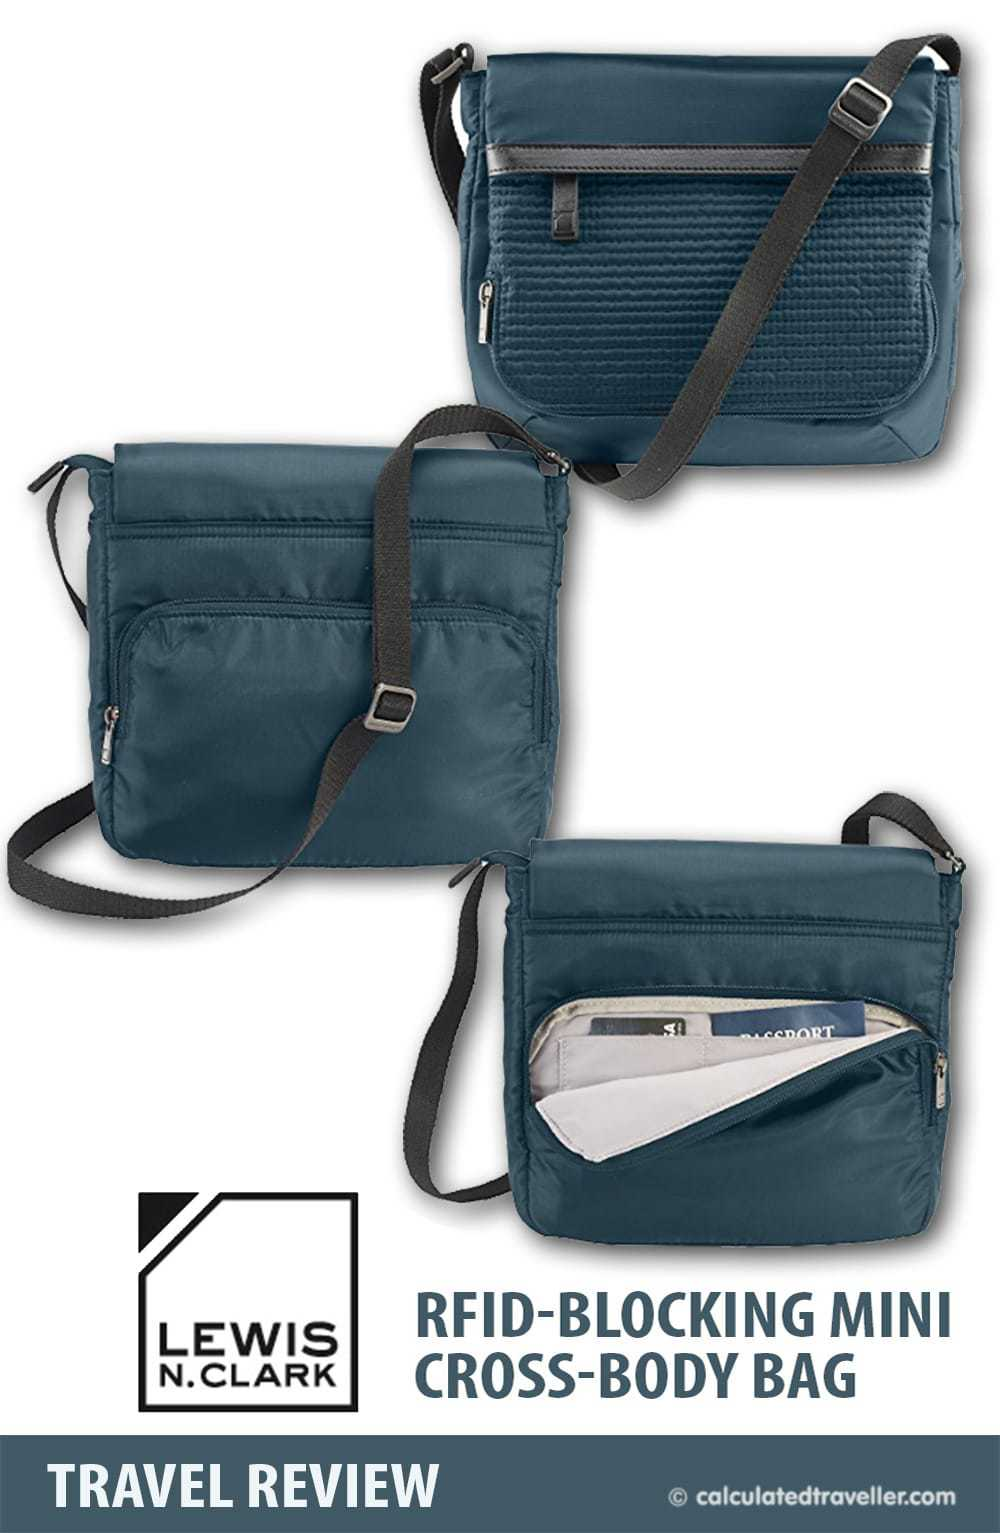 Lewis N. Clark WEA RFID-Blocking Mini Cross-Body Bag by Calculated Traveller